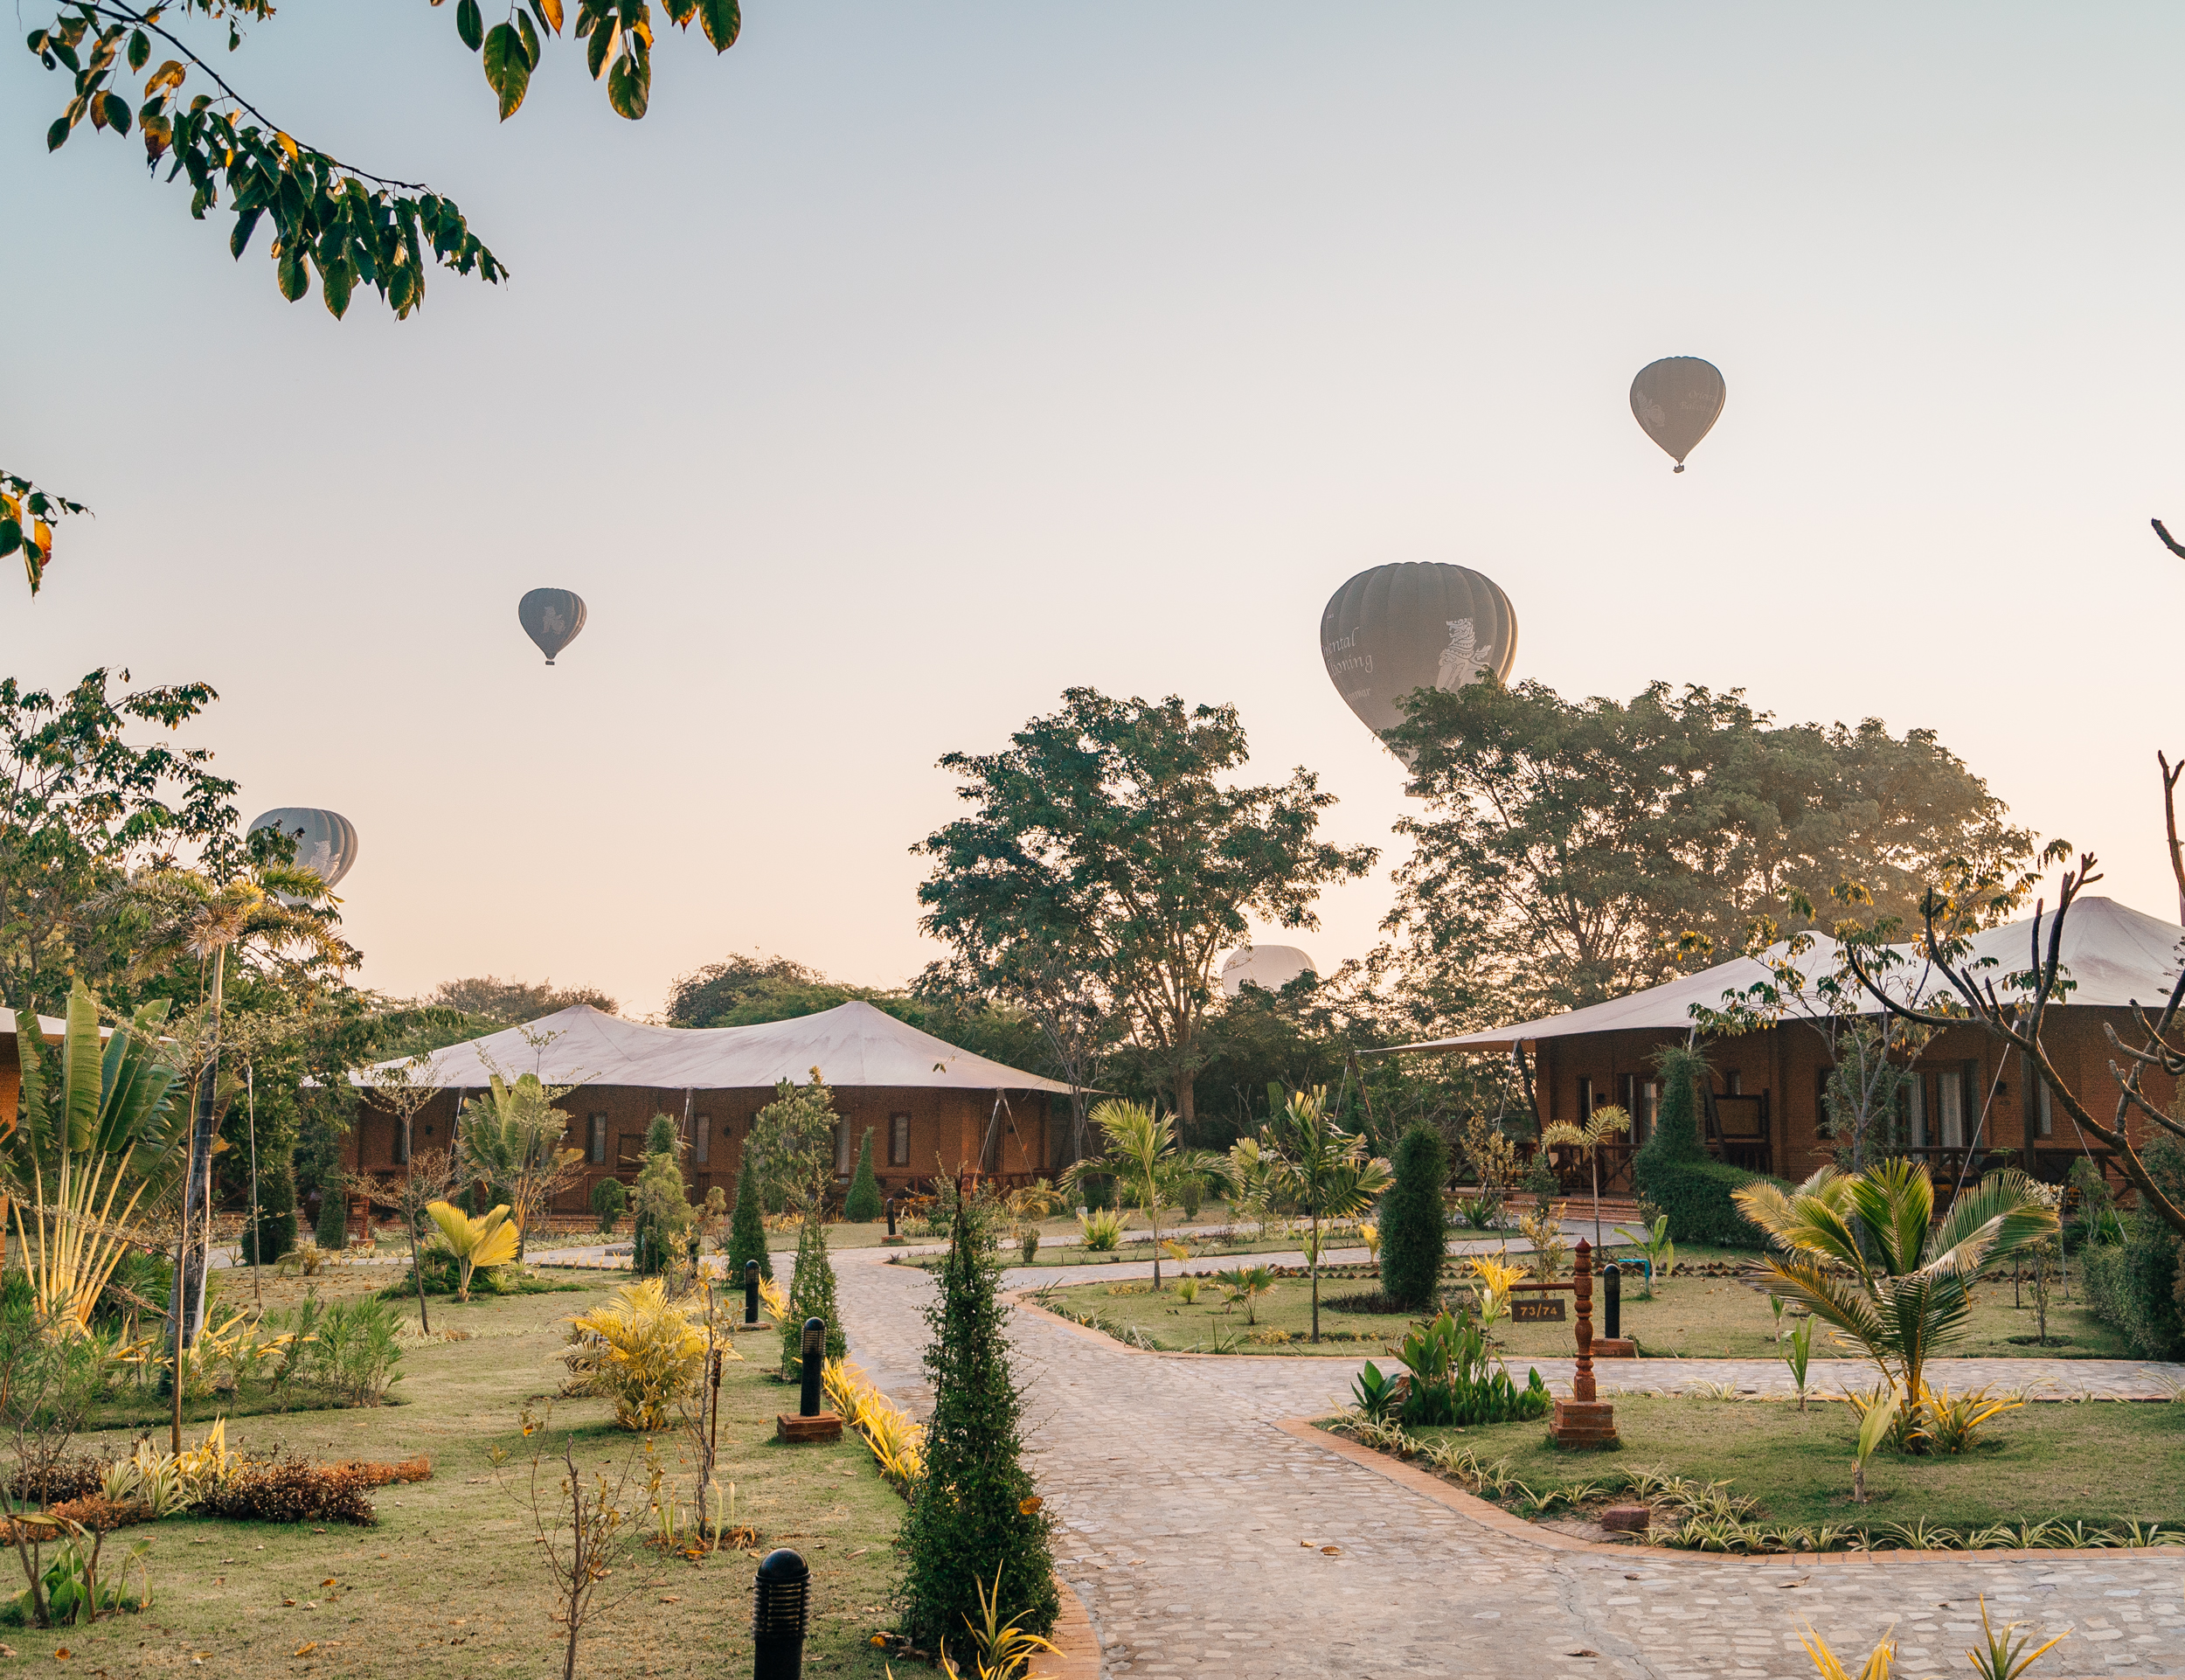 The Bagan Lodge Hotel in the Mandalay region of Myanmar